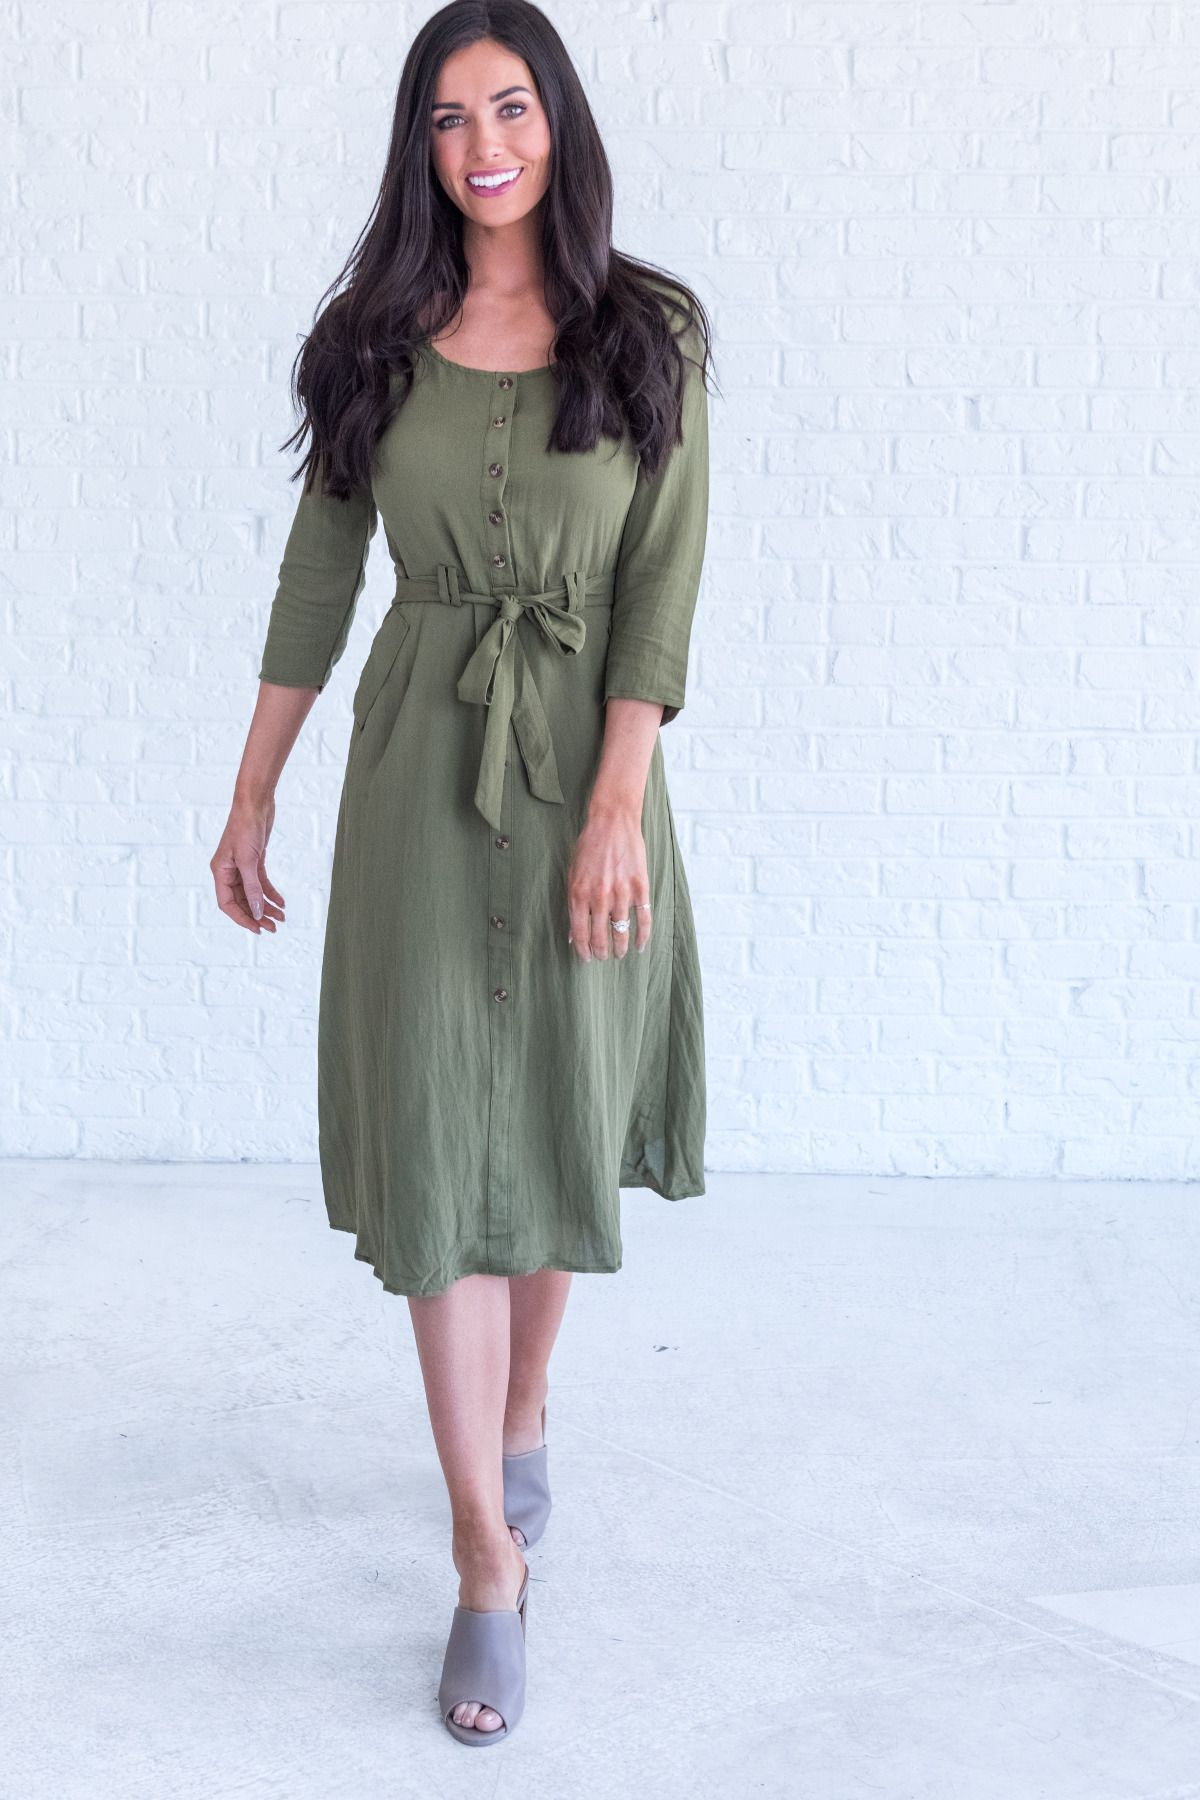 Olive Midi Dress Cute Dress Outfit Ideas For Winter Fall Dress Outfit Idea Dresses For Women Casual Winter Winter Dresses Cute Dresses Women Dresses Classy